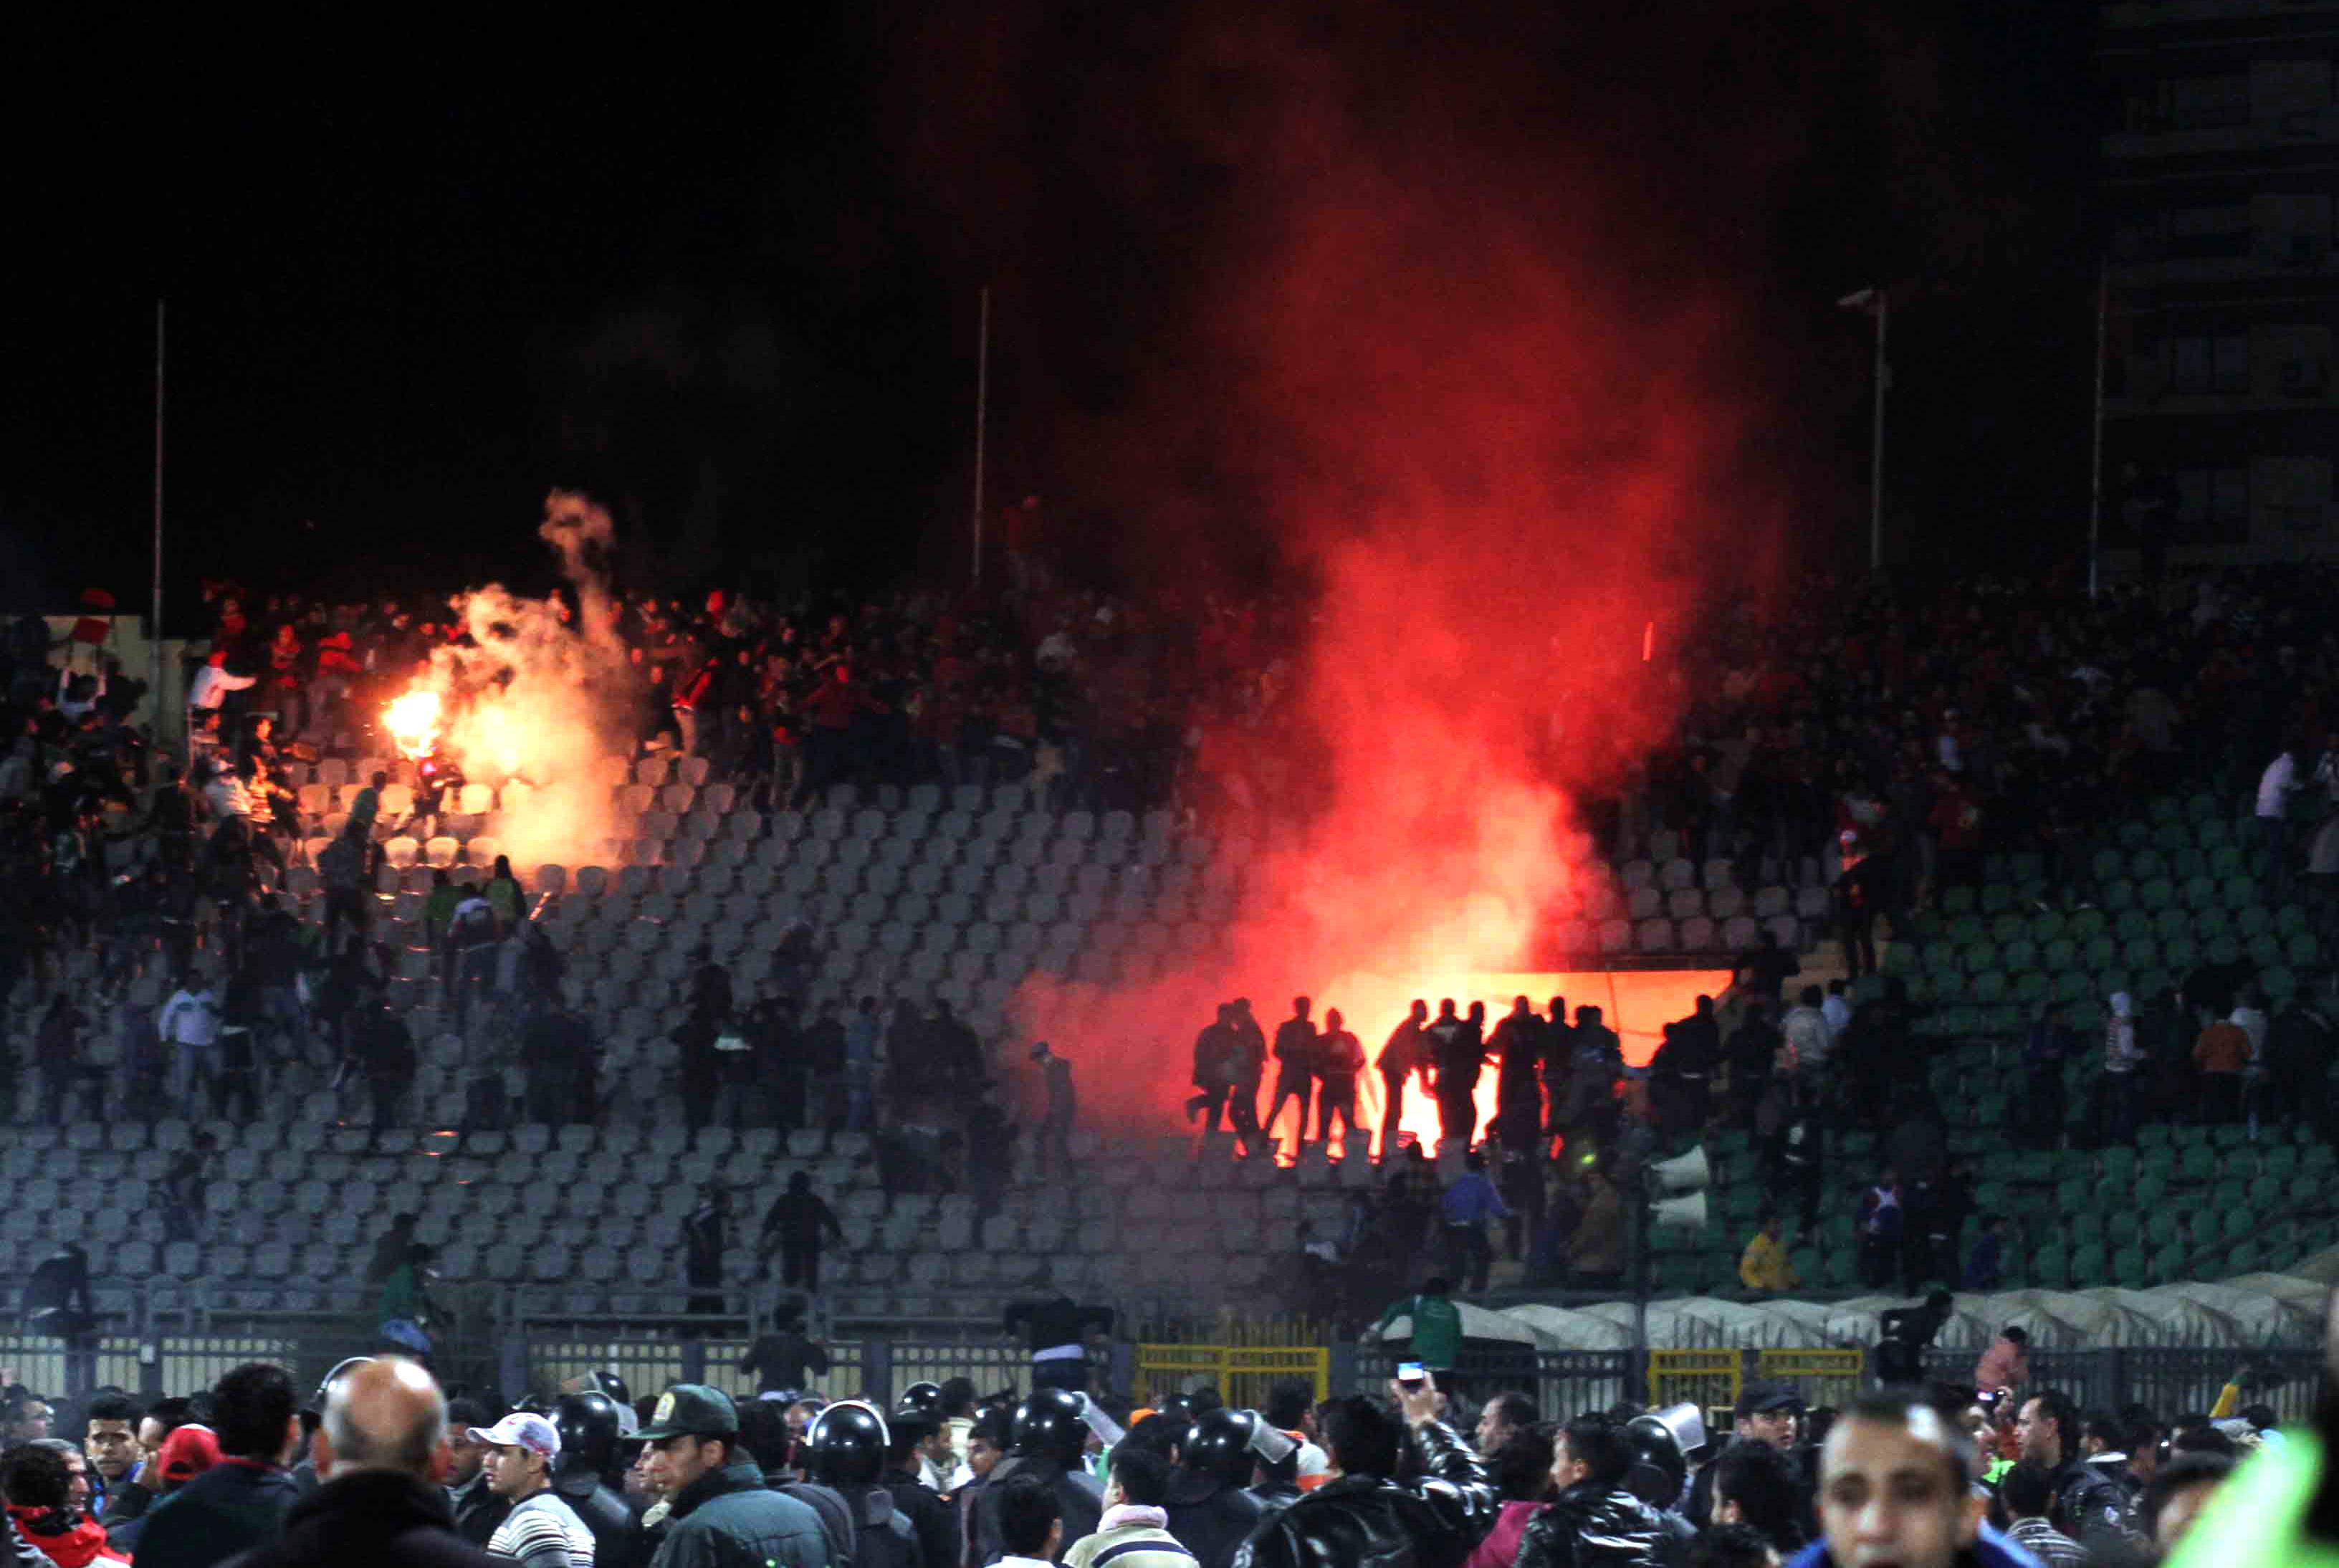 Riots sparked between the two sets of fans